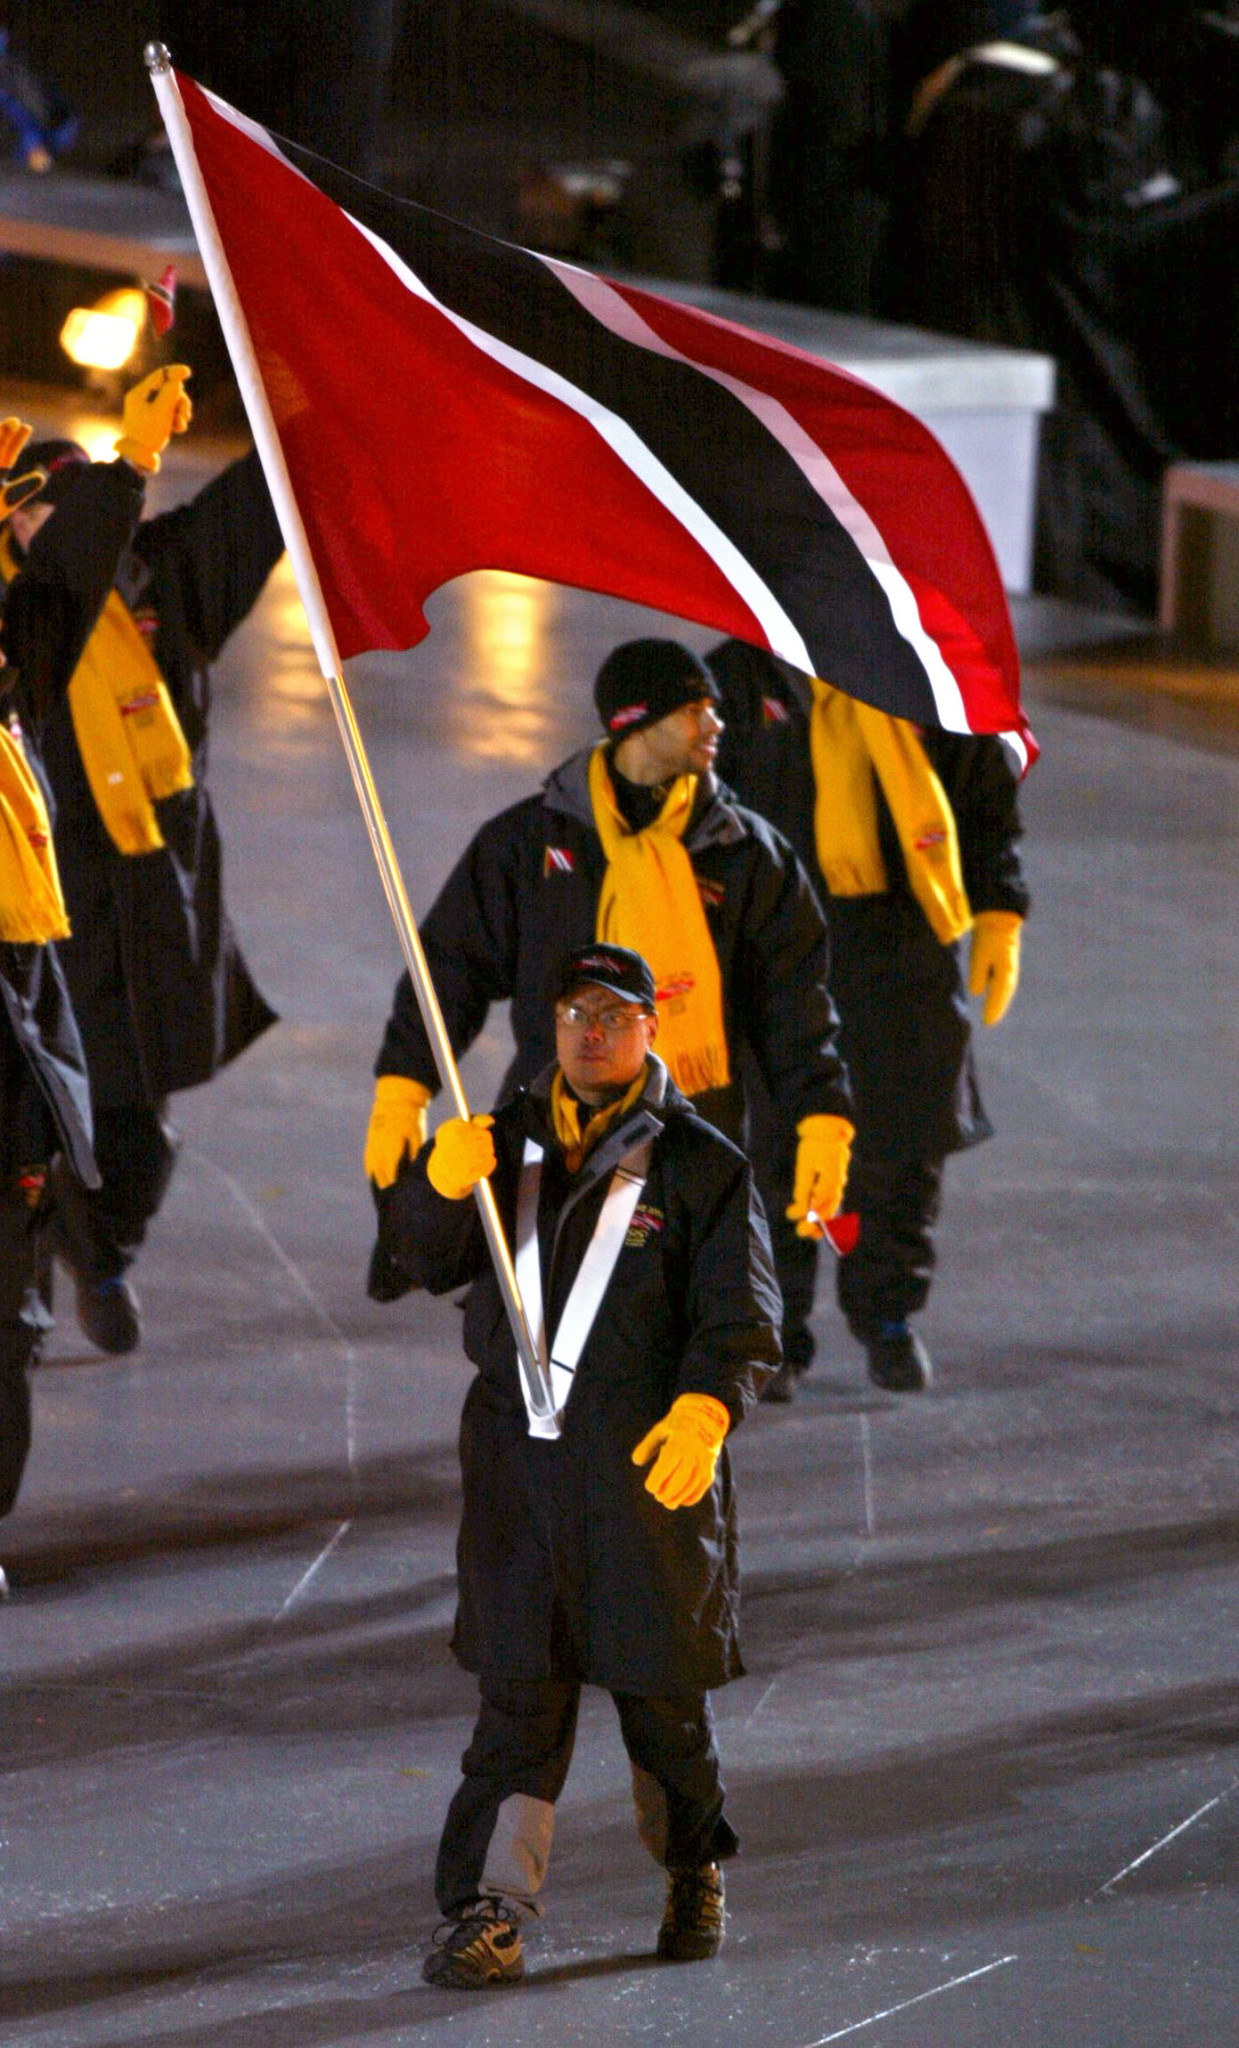 Bobsledder Gregory Sun was Trinidad and Tobago's flag bearer when the country last participated at a Winter Olympic Games, in Salt Lake City in 2002 ©Getty Images